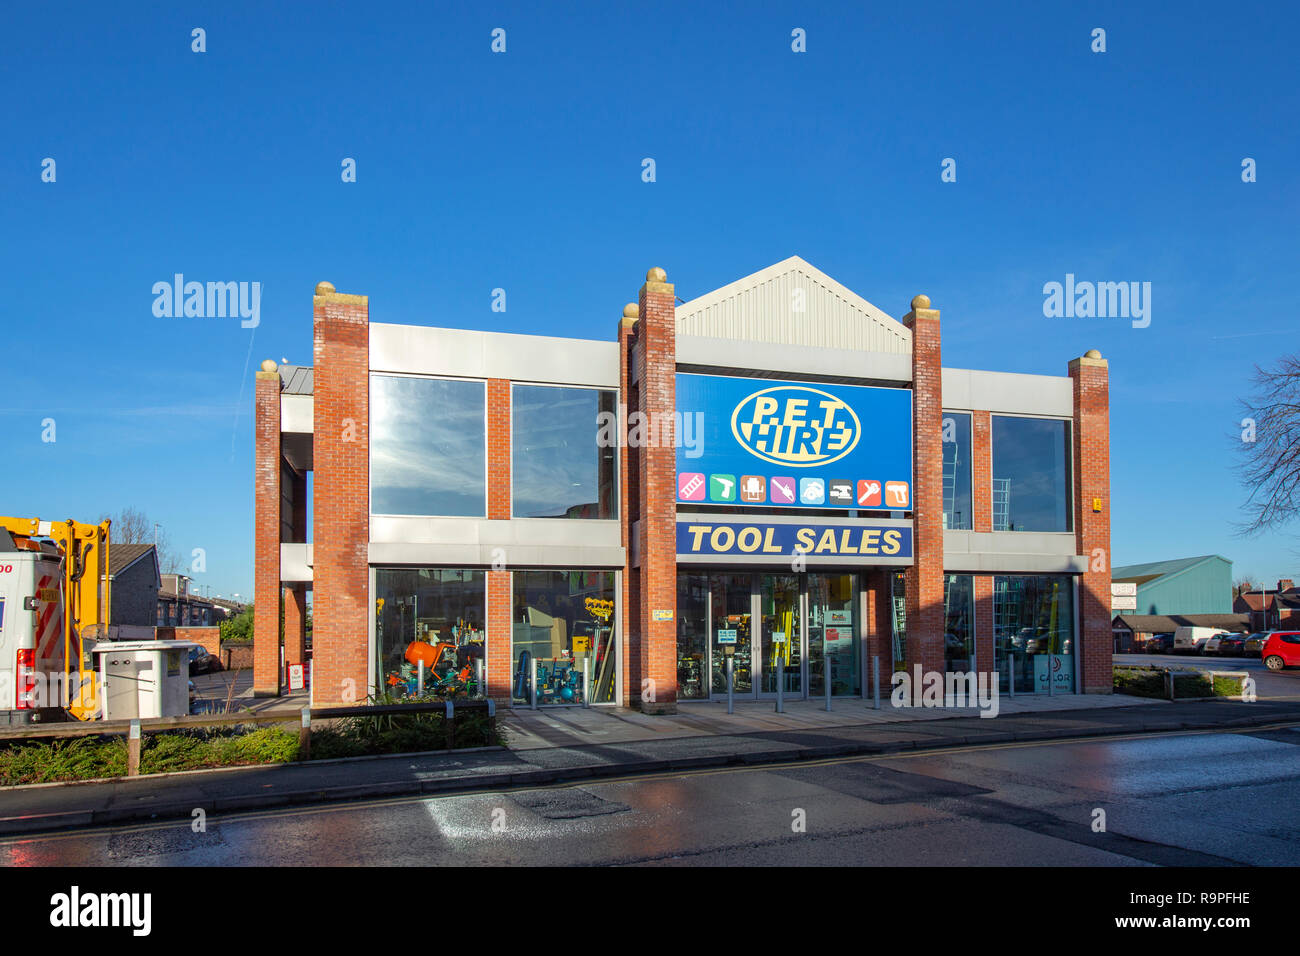 P.E.T tool sales and tool hire store at Grand Junction Retail Park in Crewe Cheshire UK - Stock Image